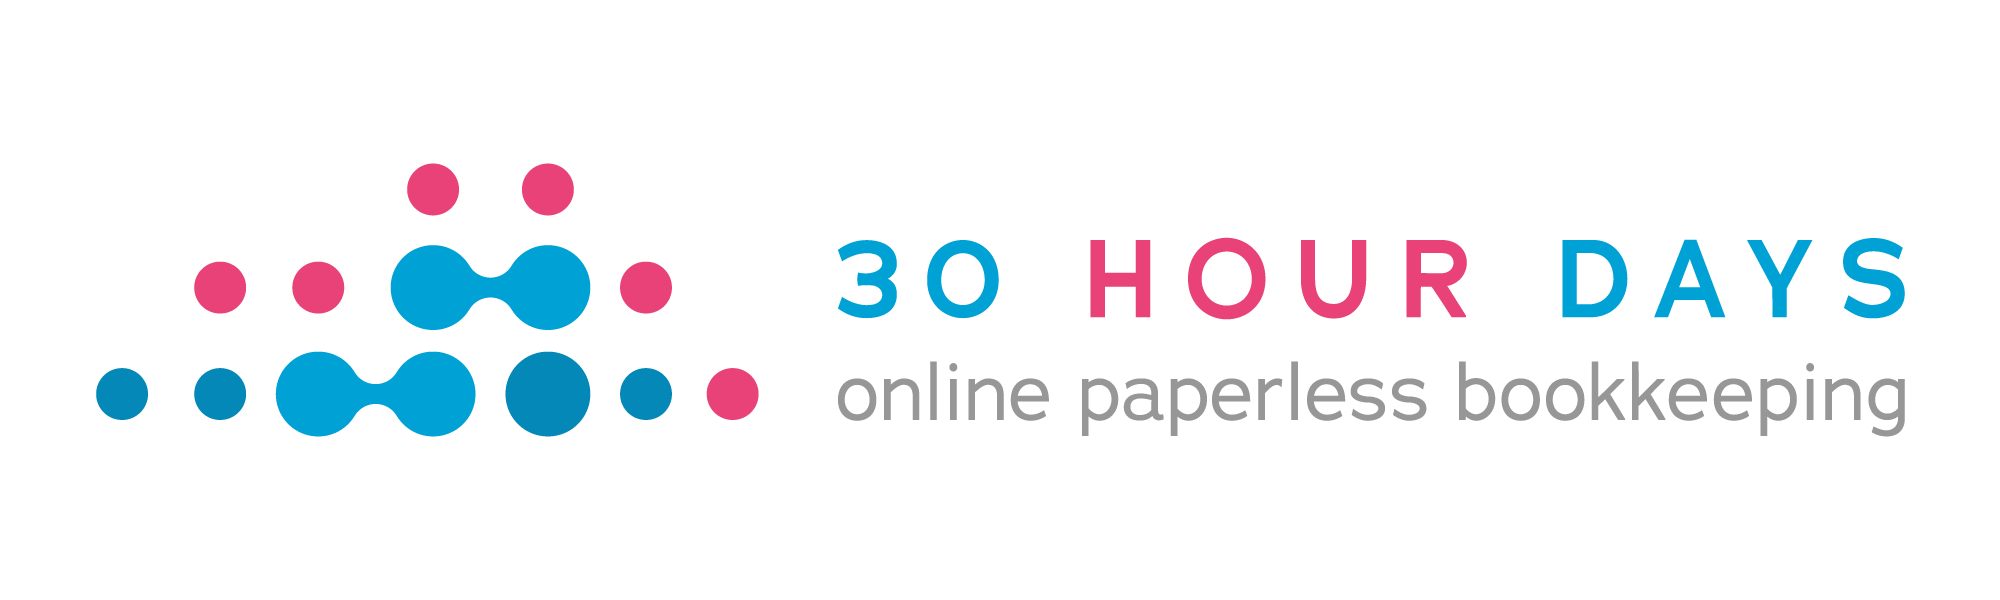 30 Hour Days logo